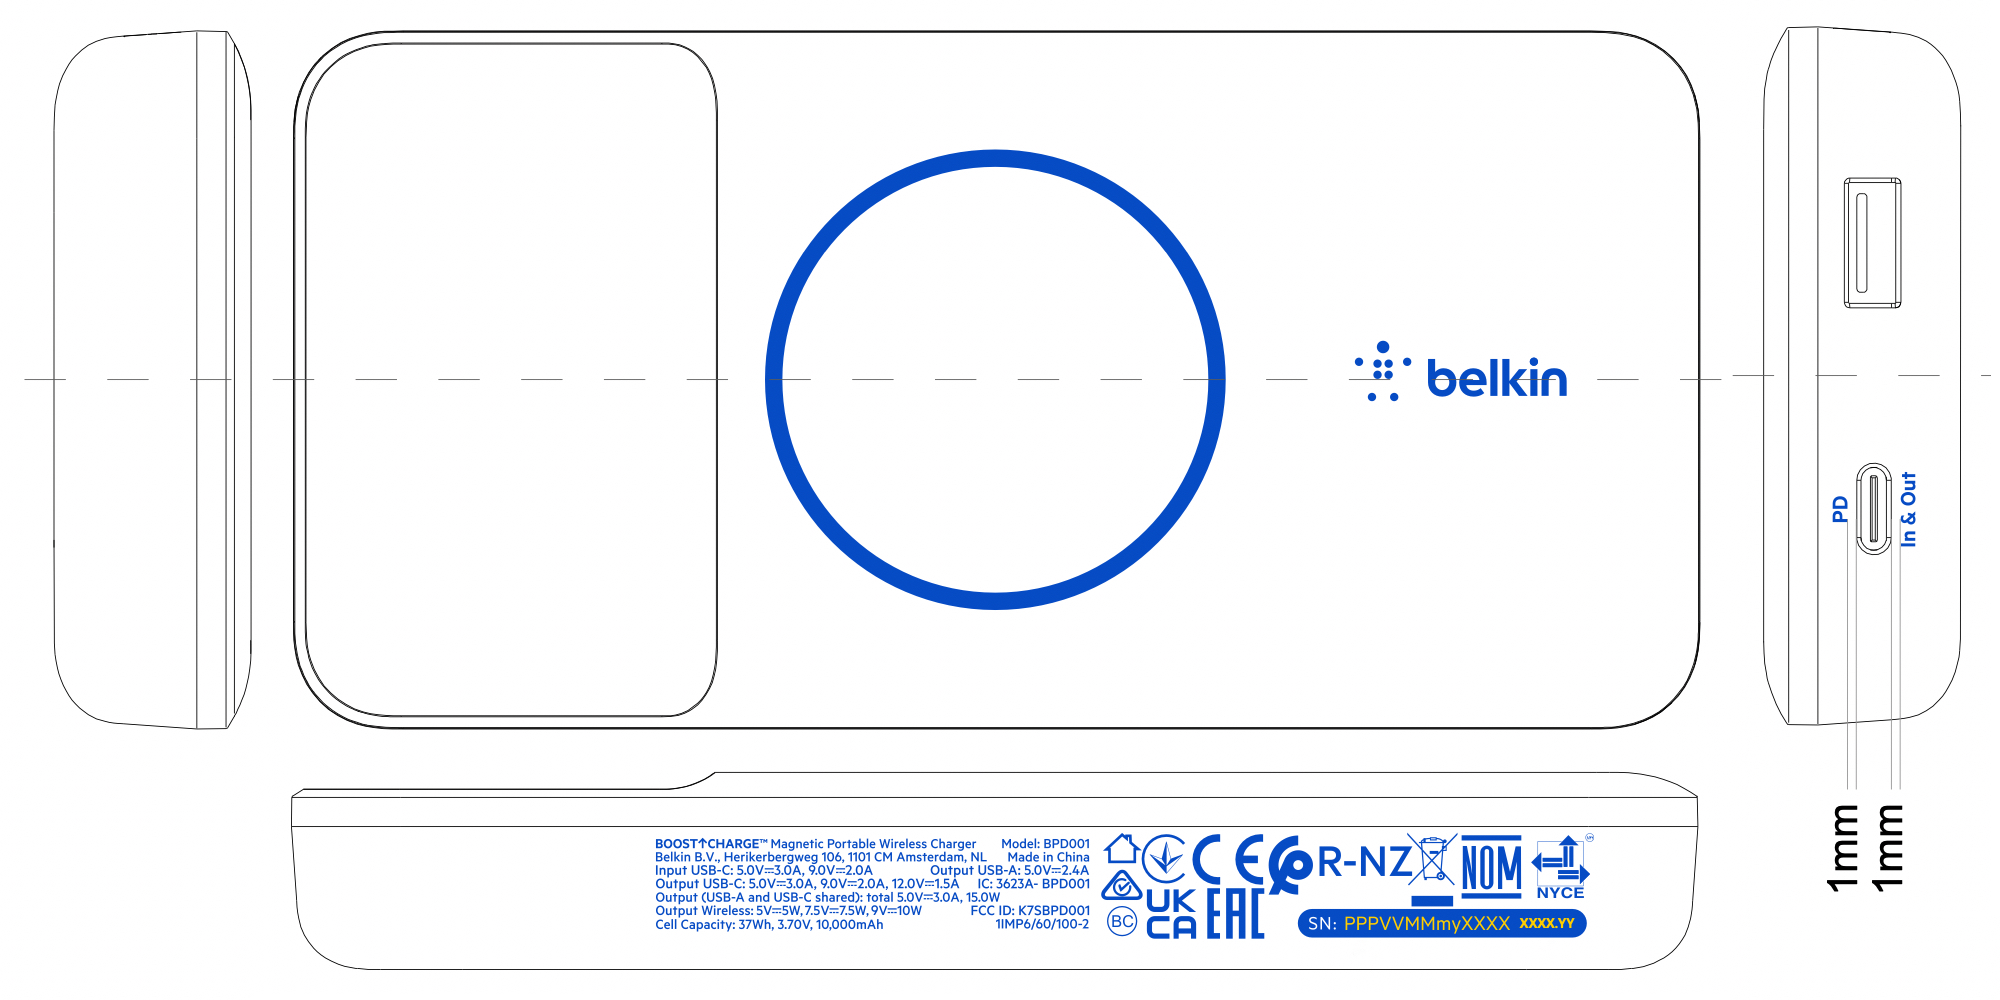 Belkin BOOST↑CHARGE Magnetic Portable Wireless Charger BPD001